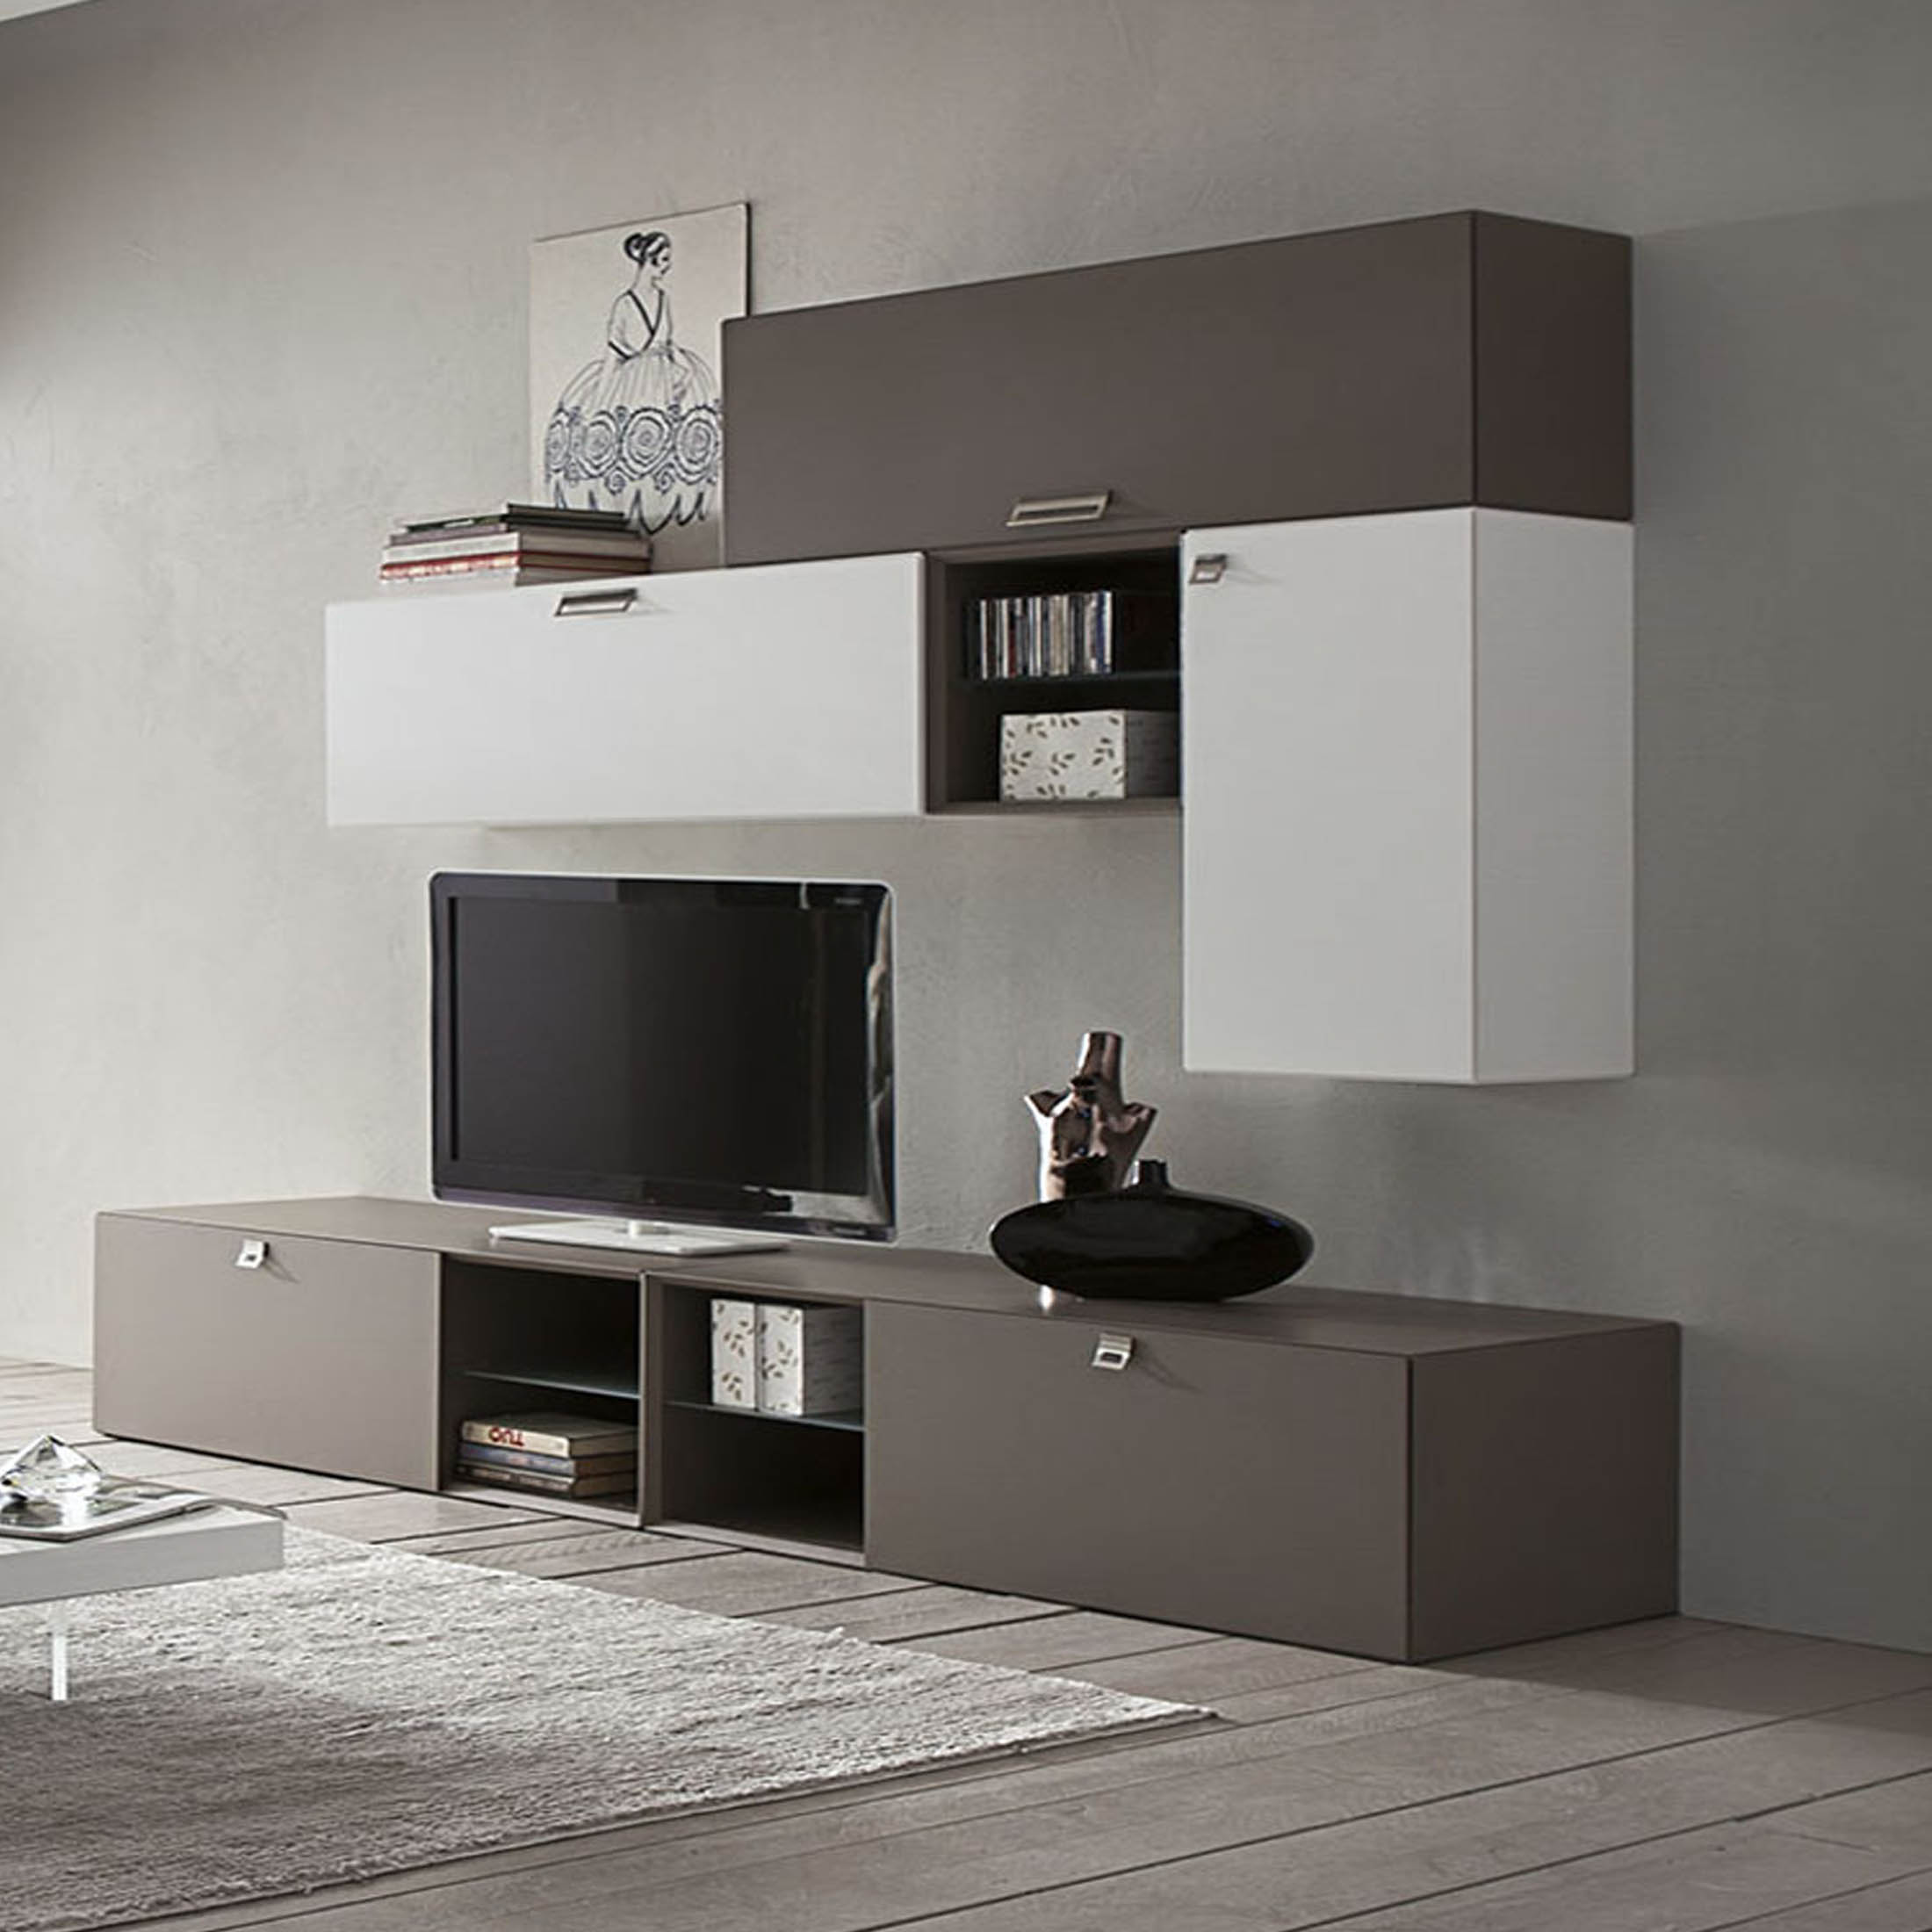 tv entertainment units inspiration gallery. Black Bedroom Furniture Sets. Home Design Ideas